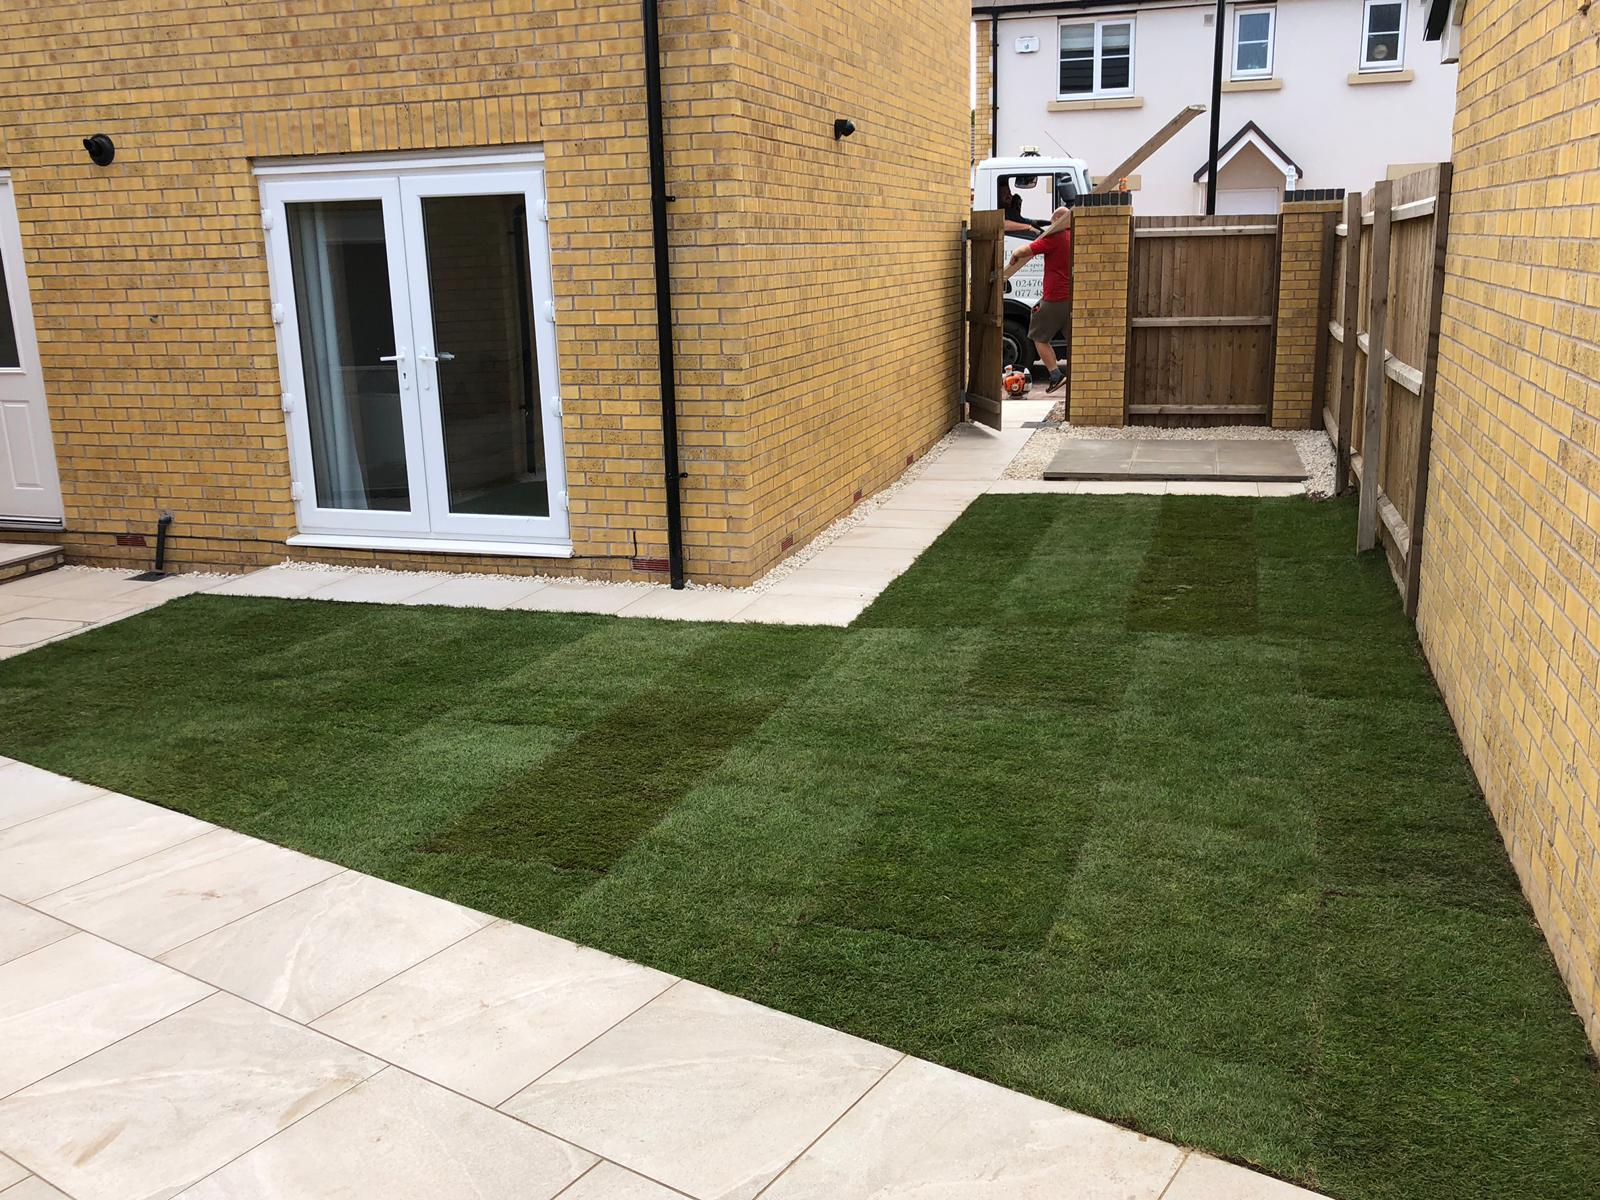 Newly landscaped garden project including limestone flags and new turf